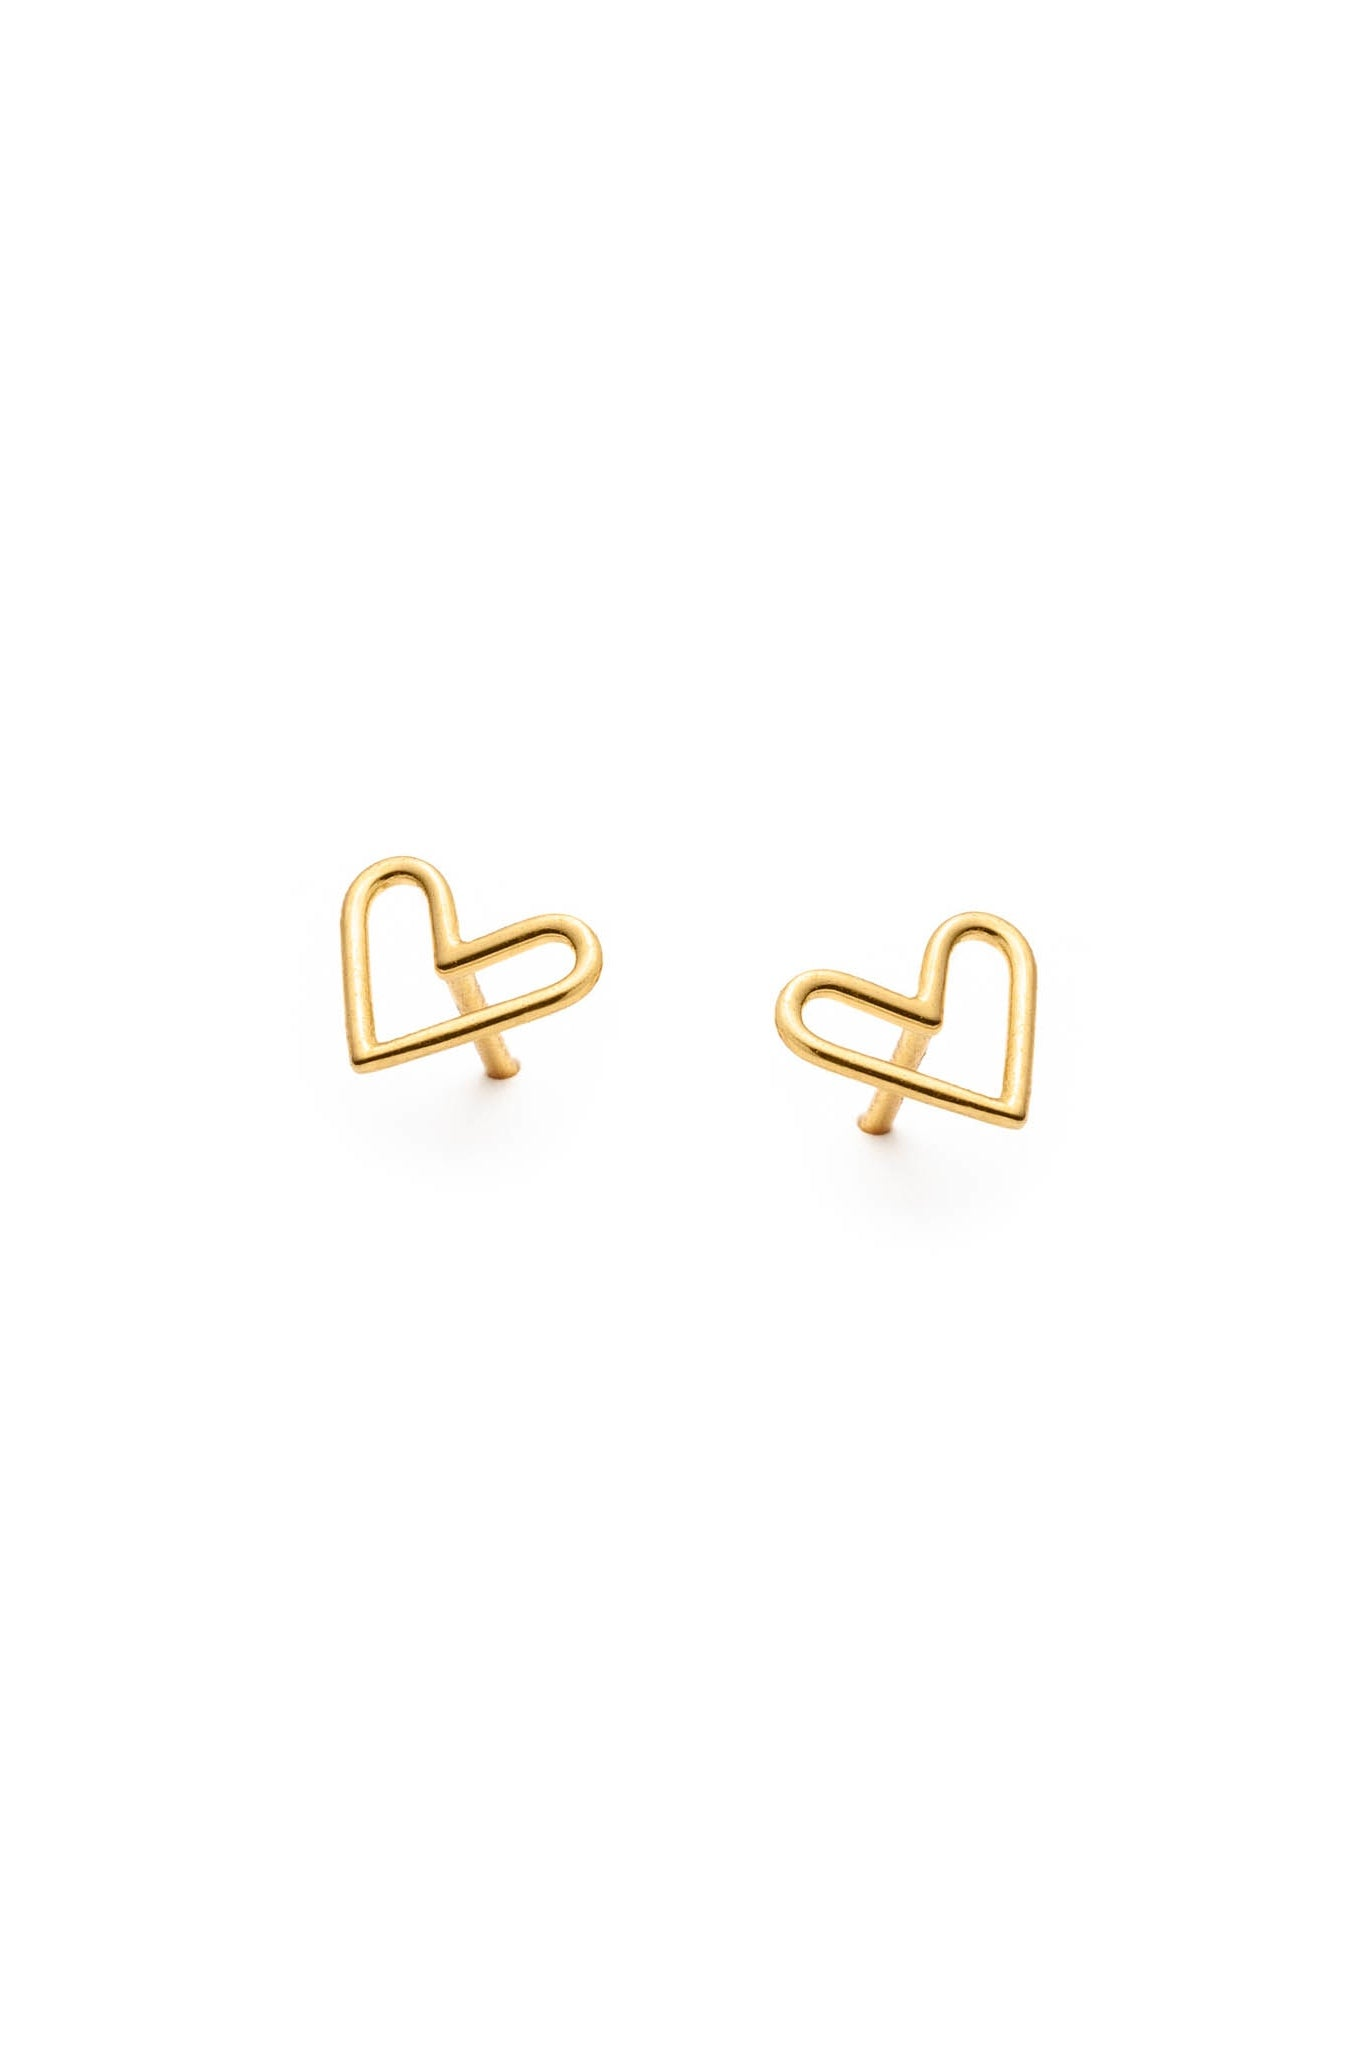 Heart stud earrings by Lidia; flat lay; 14k yellow gold plated silver